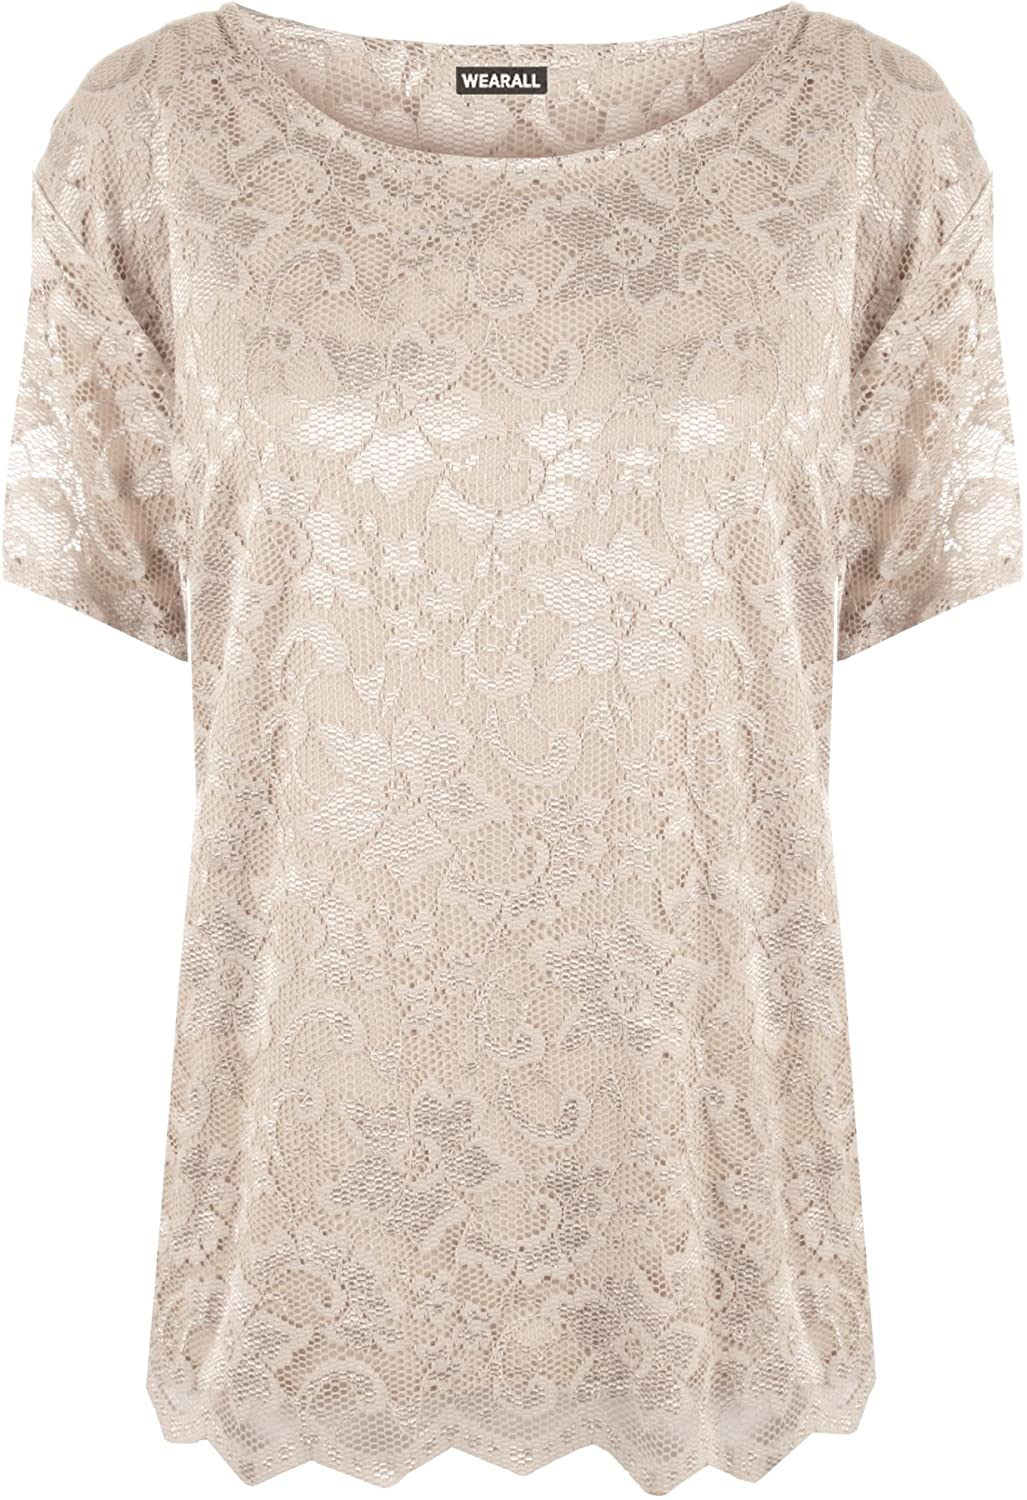 UK 22-24 US 18-20 WearAll Plus Size Womens Lace Short Sleeve Top White